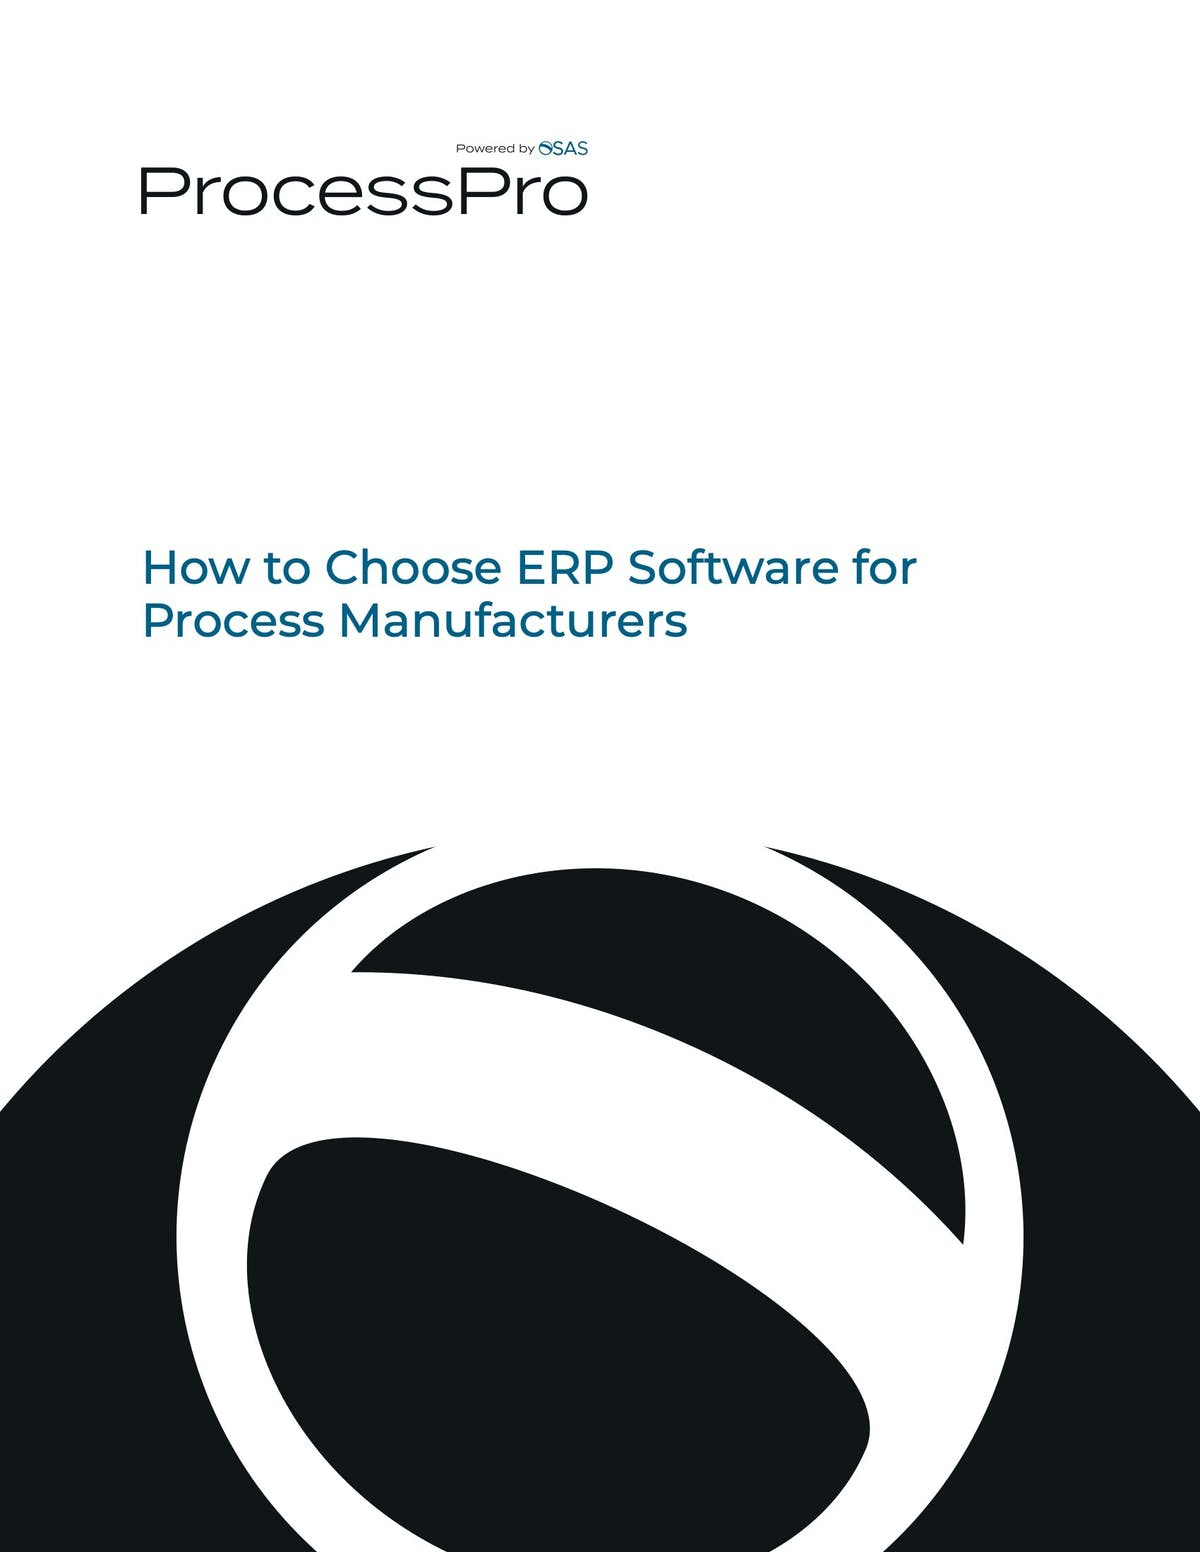 ProcessPro White Paper - How to Choose ERP Software For Process Manufacturers